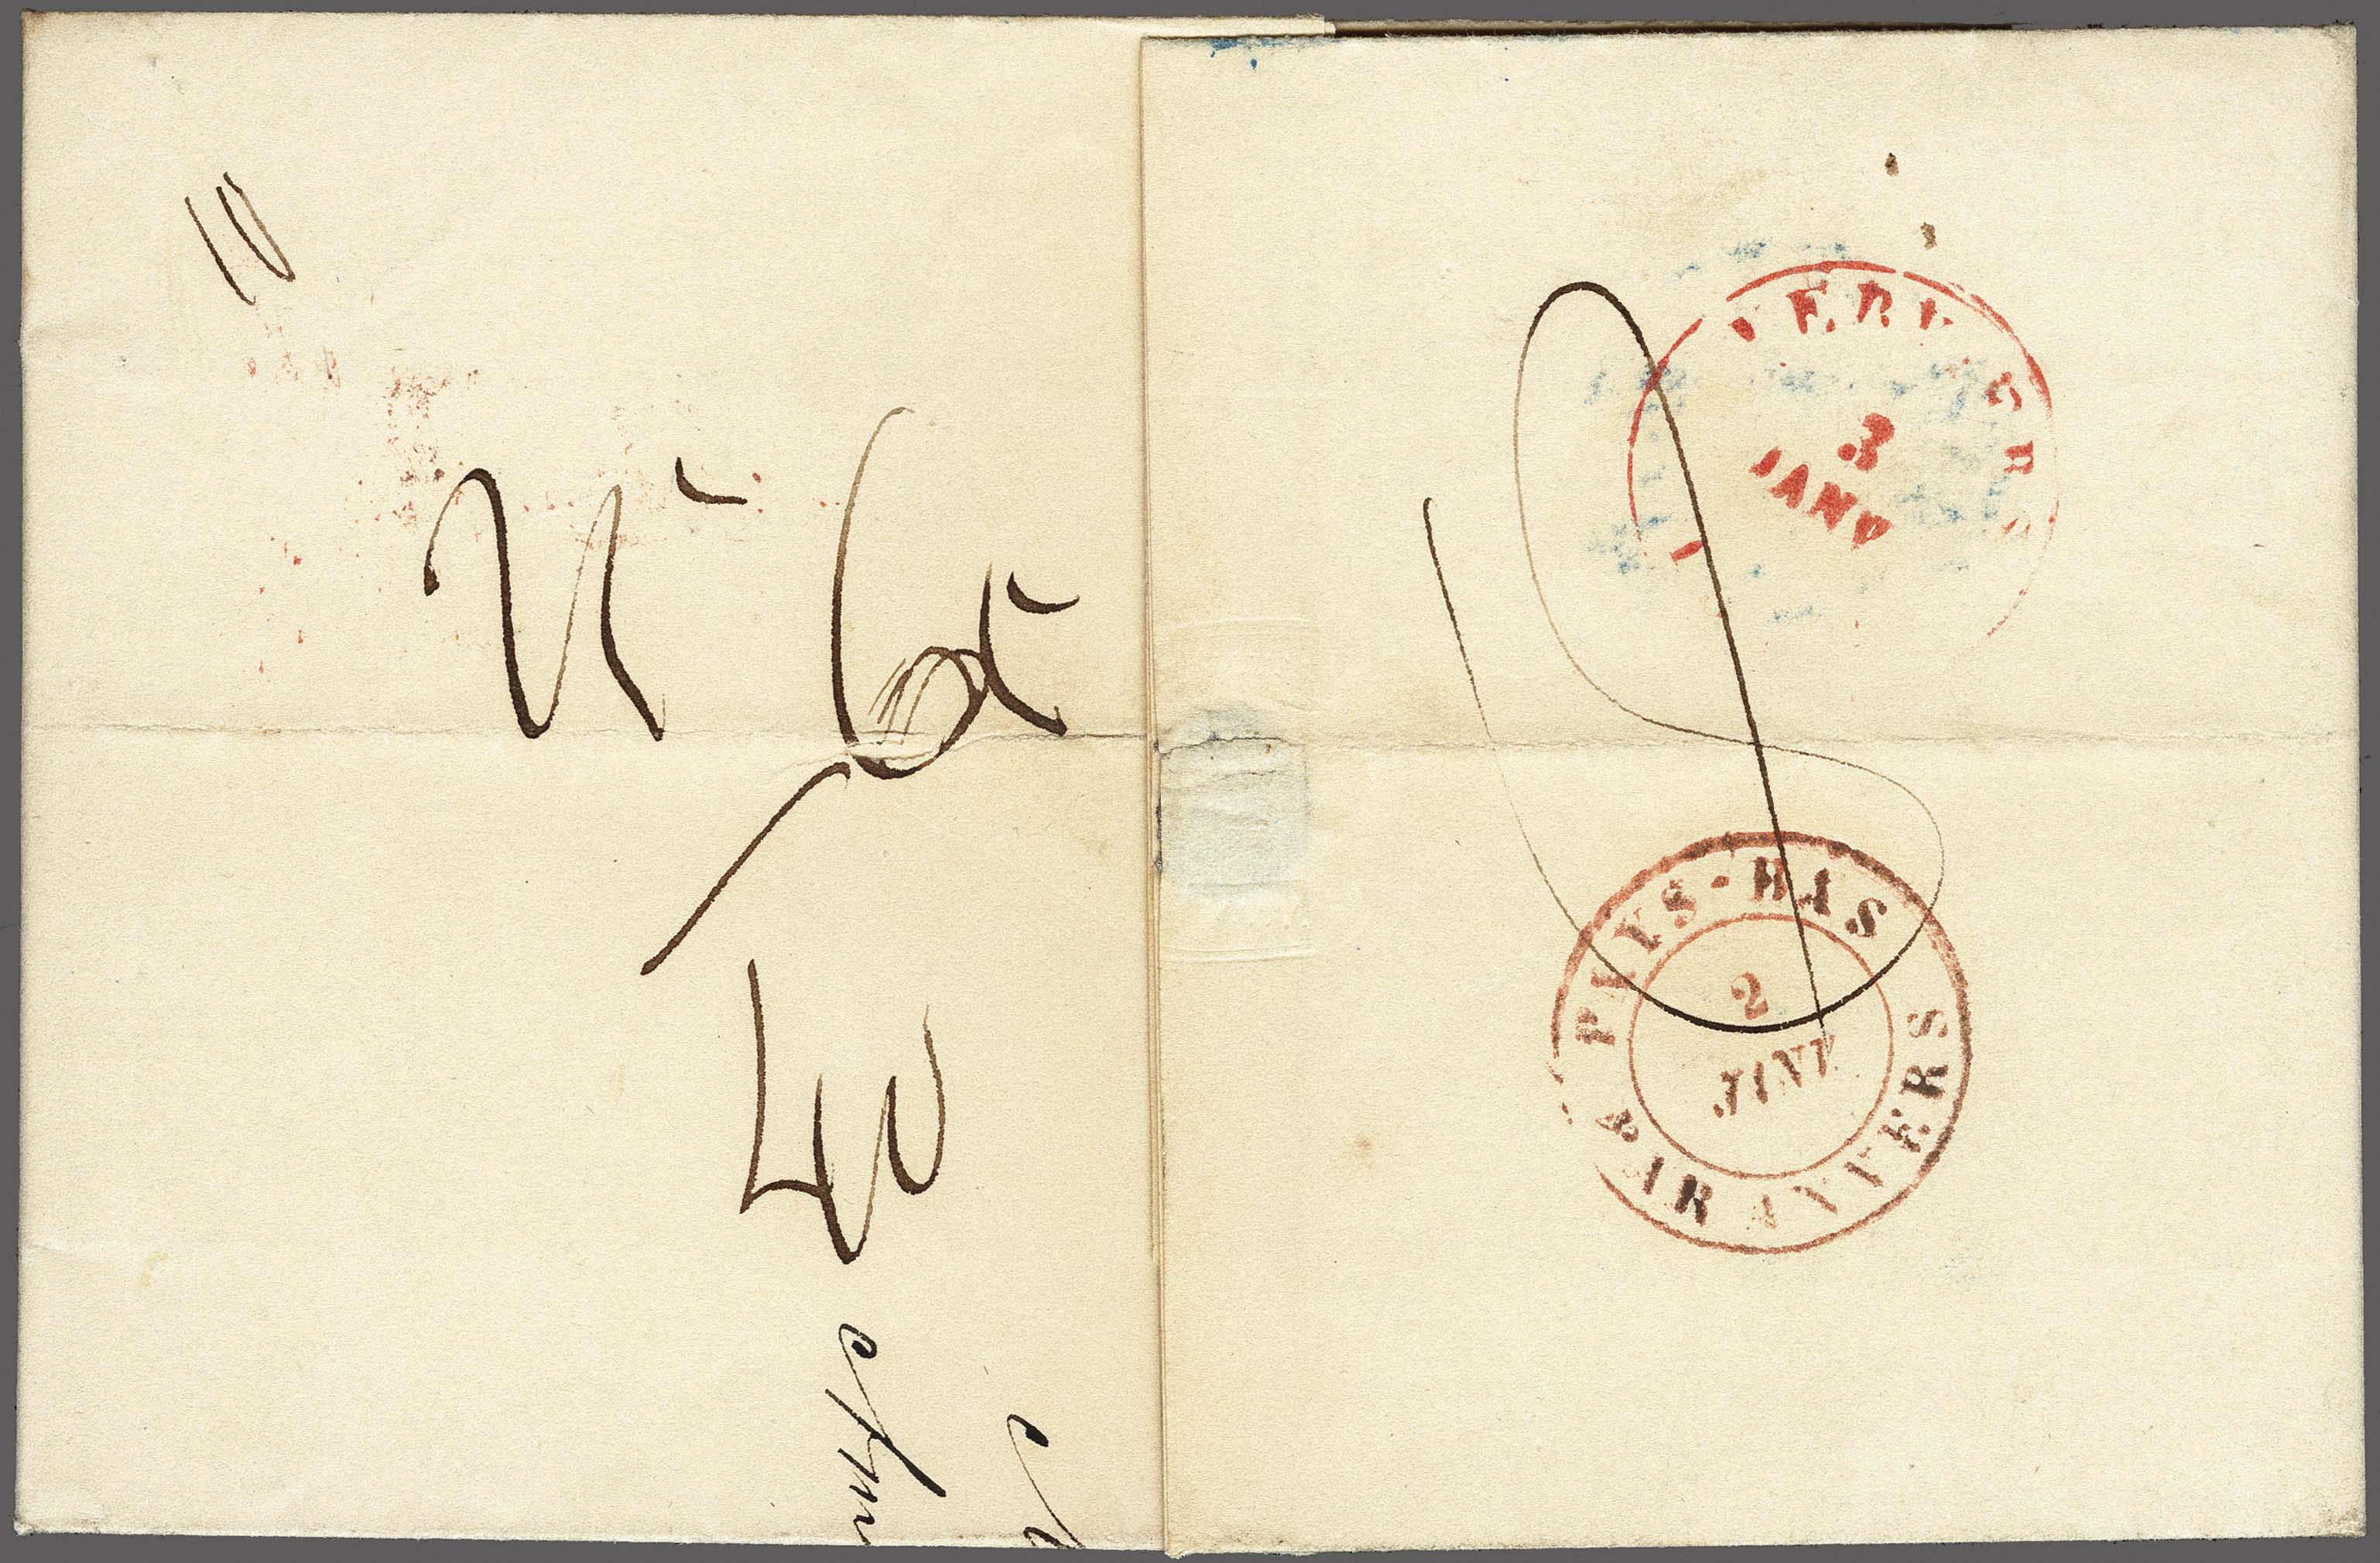 Lot 2464 - Netherlands and former colonies Netherlands -  Corinphila Veilingen Auction 250-253 - Day 3 - Netherlands and former colonies - Single lots & Picture postcards